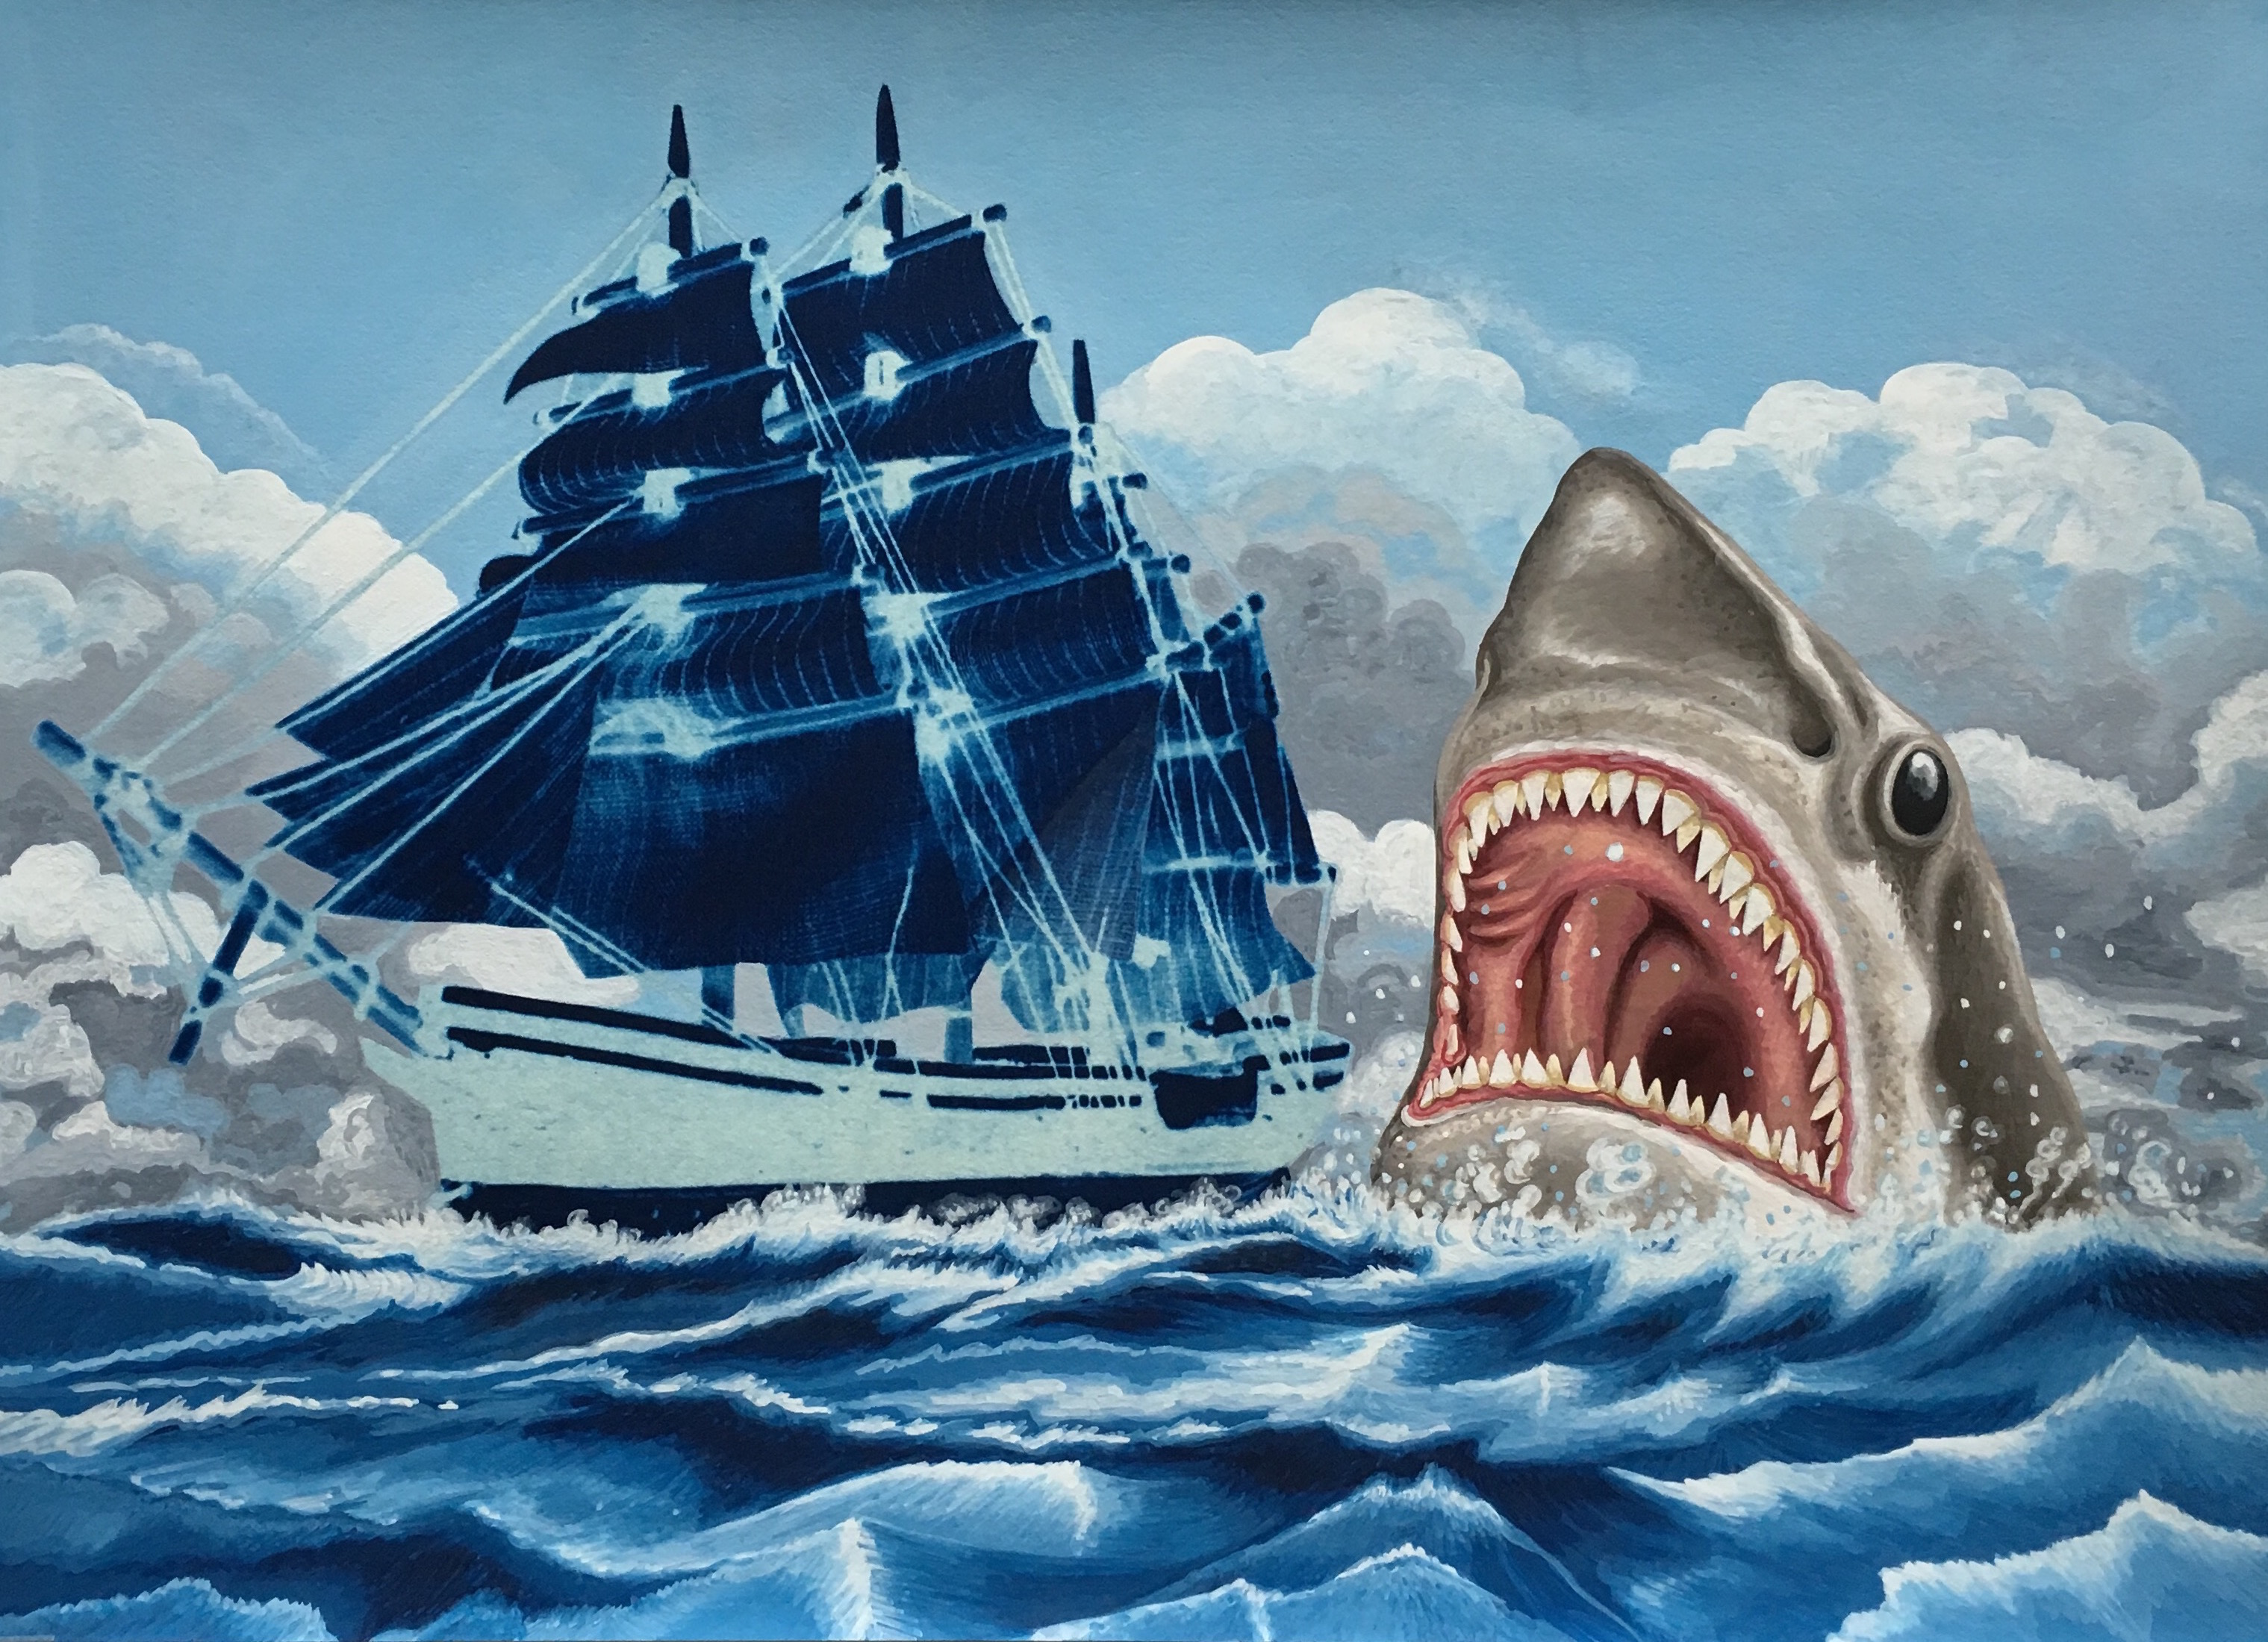 3) Shark Attack. 2016, 29.7 x 40.5 cm, cyanotype print and gouache on paper.